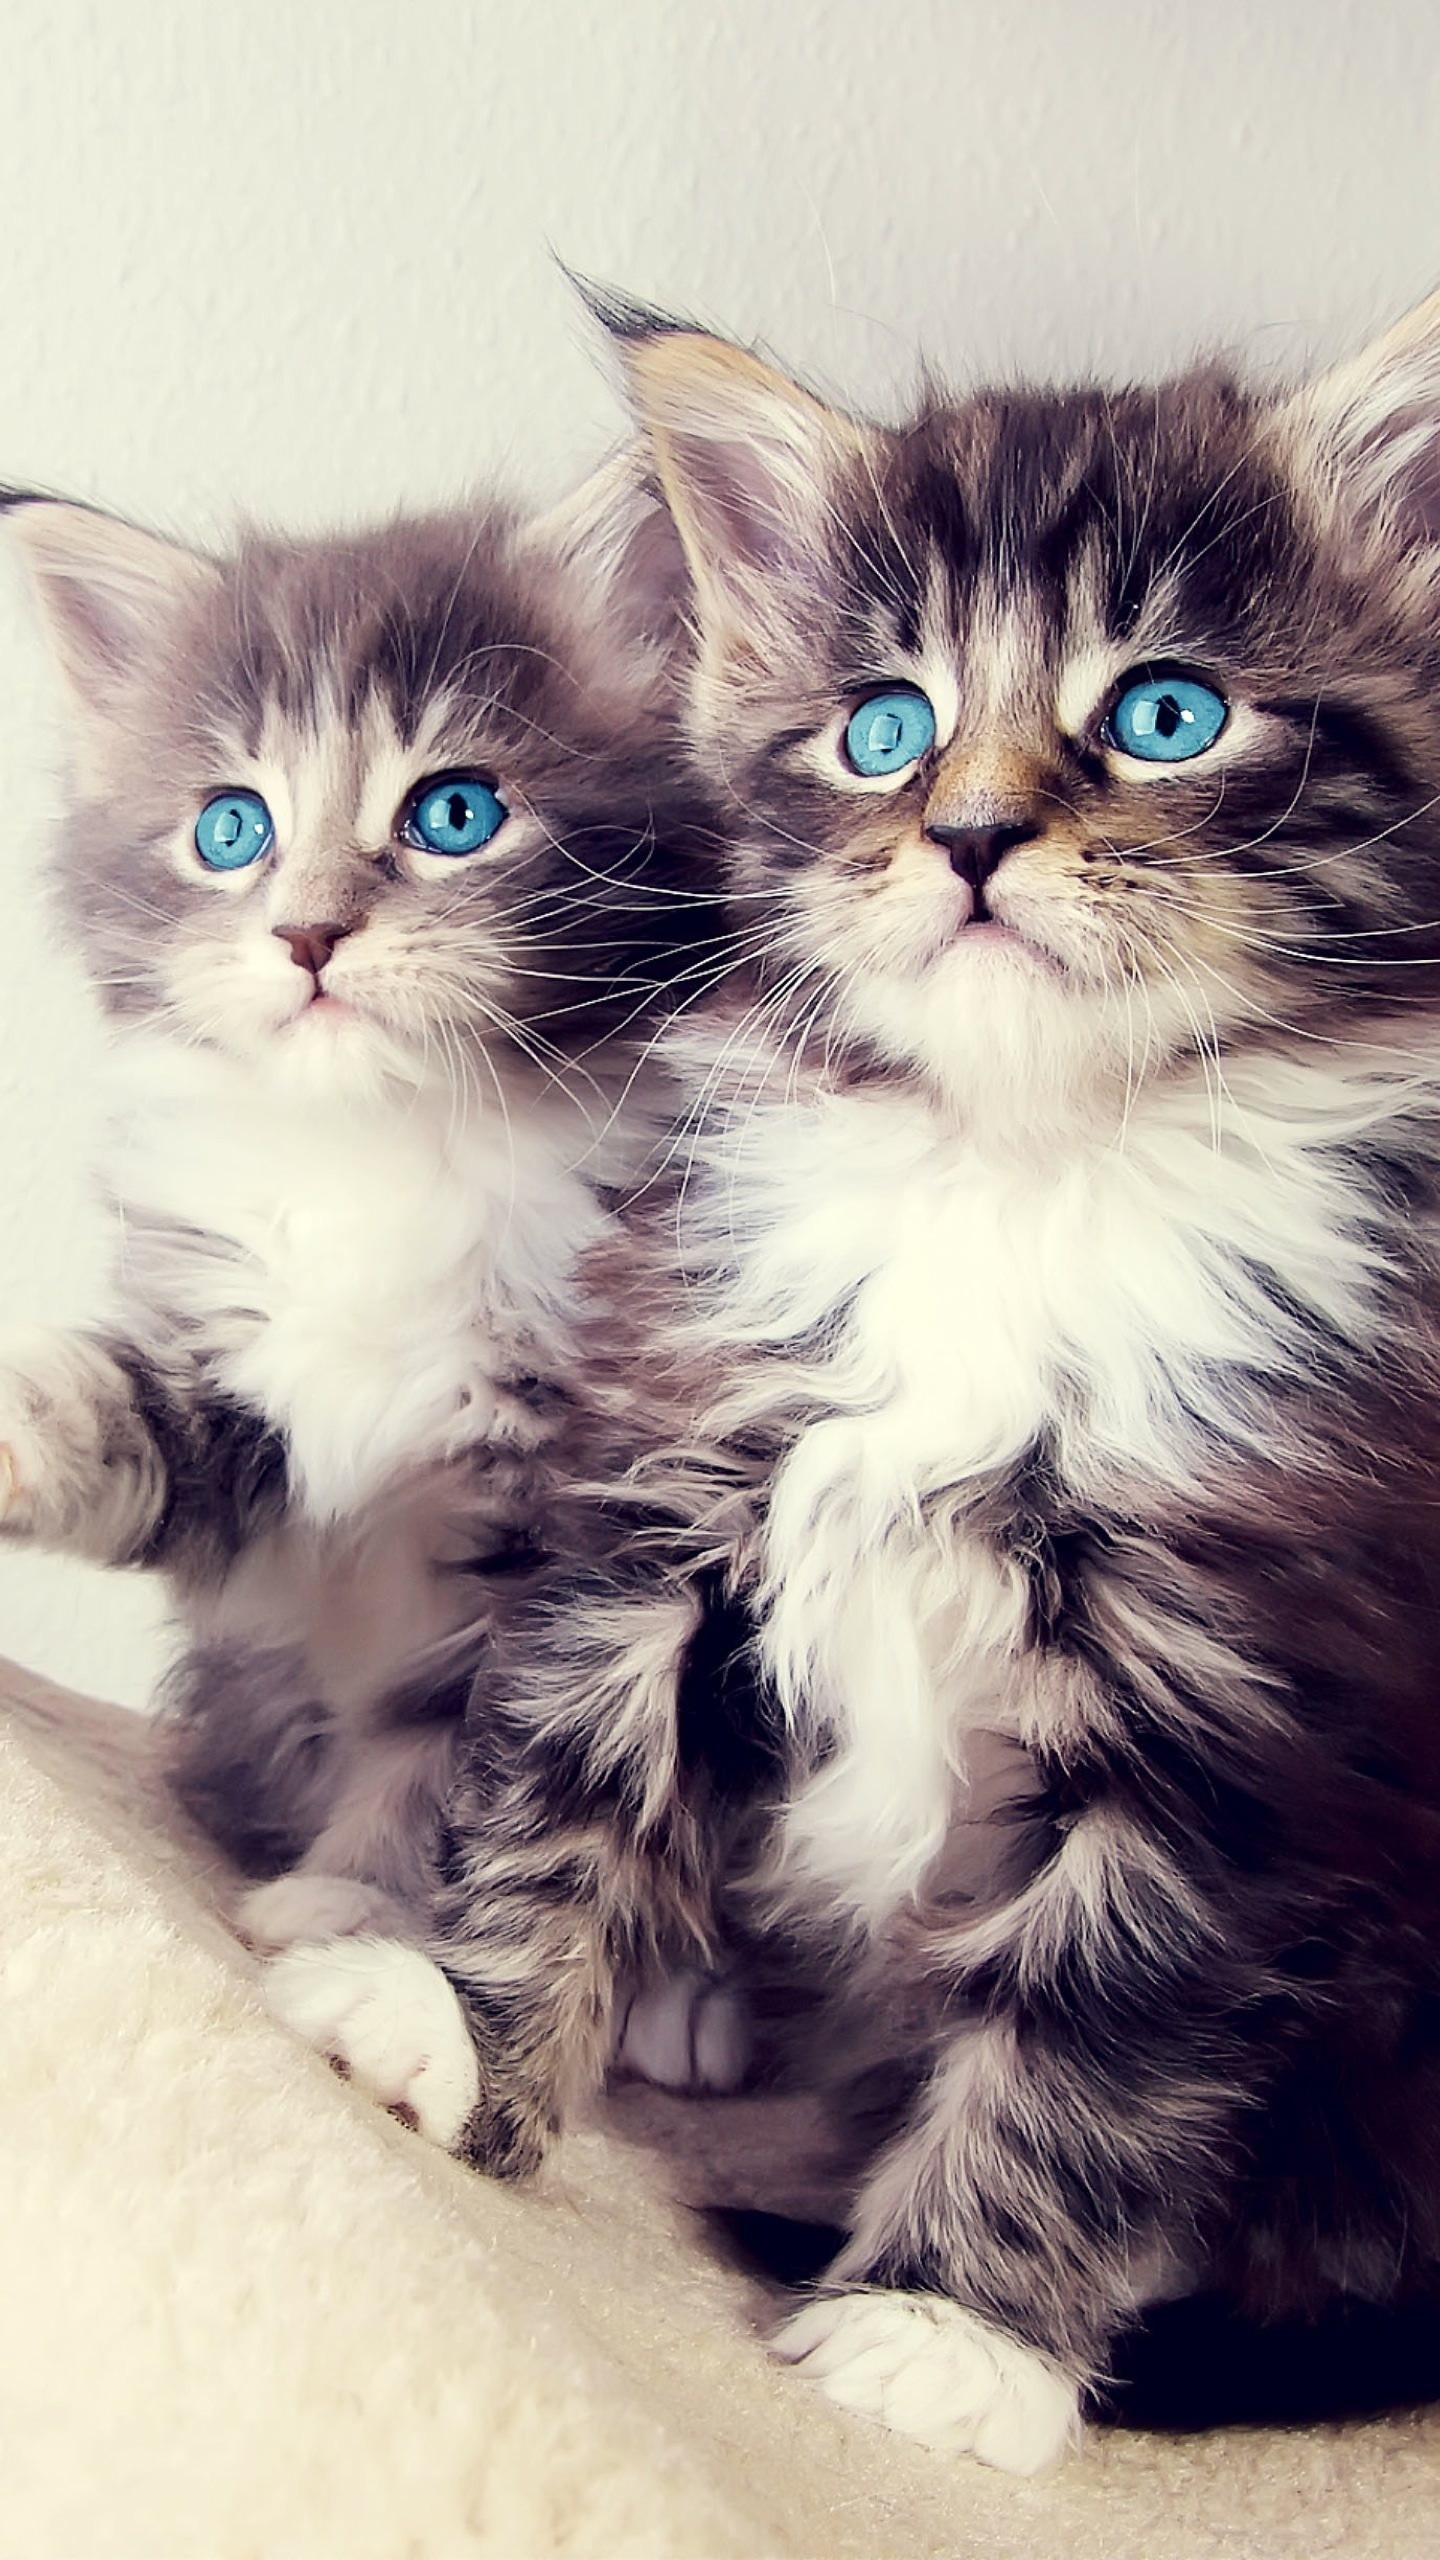 Cute Cats Hd Wallpapers For Htc 10 Page 3 Wallpapers Pictures